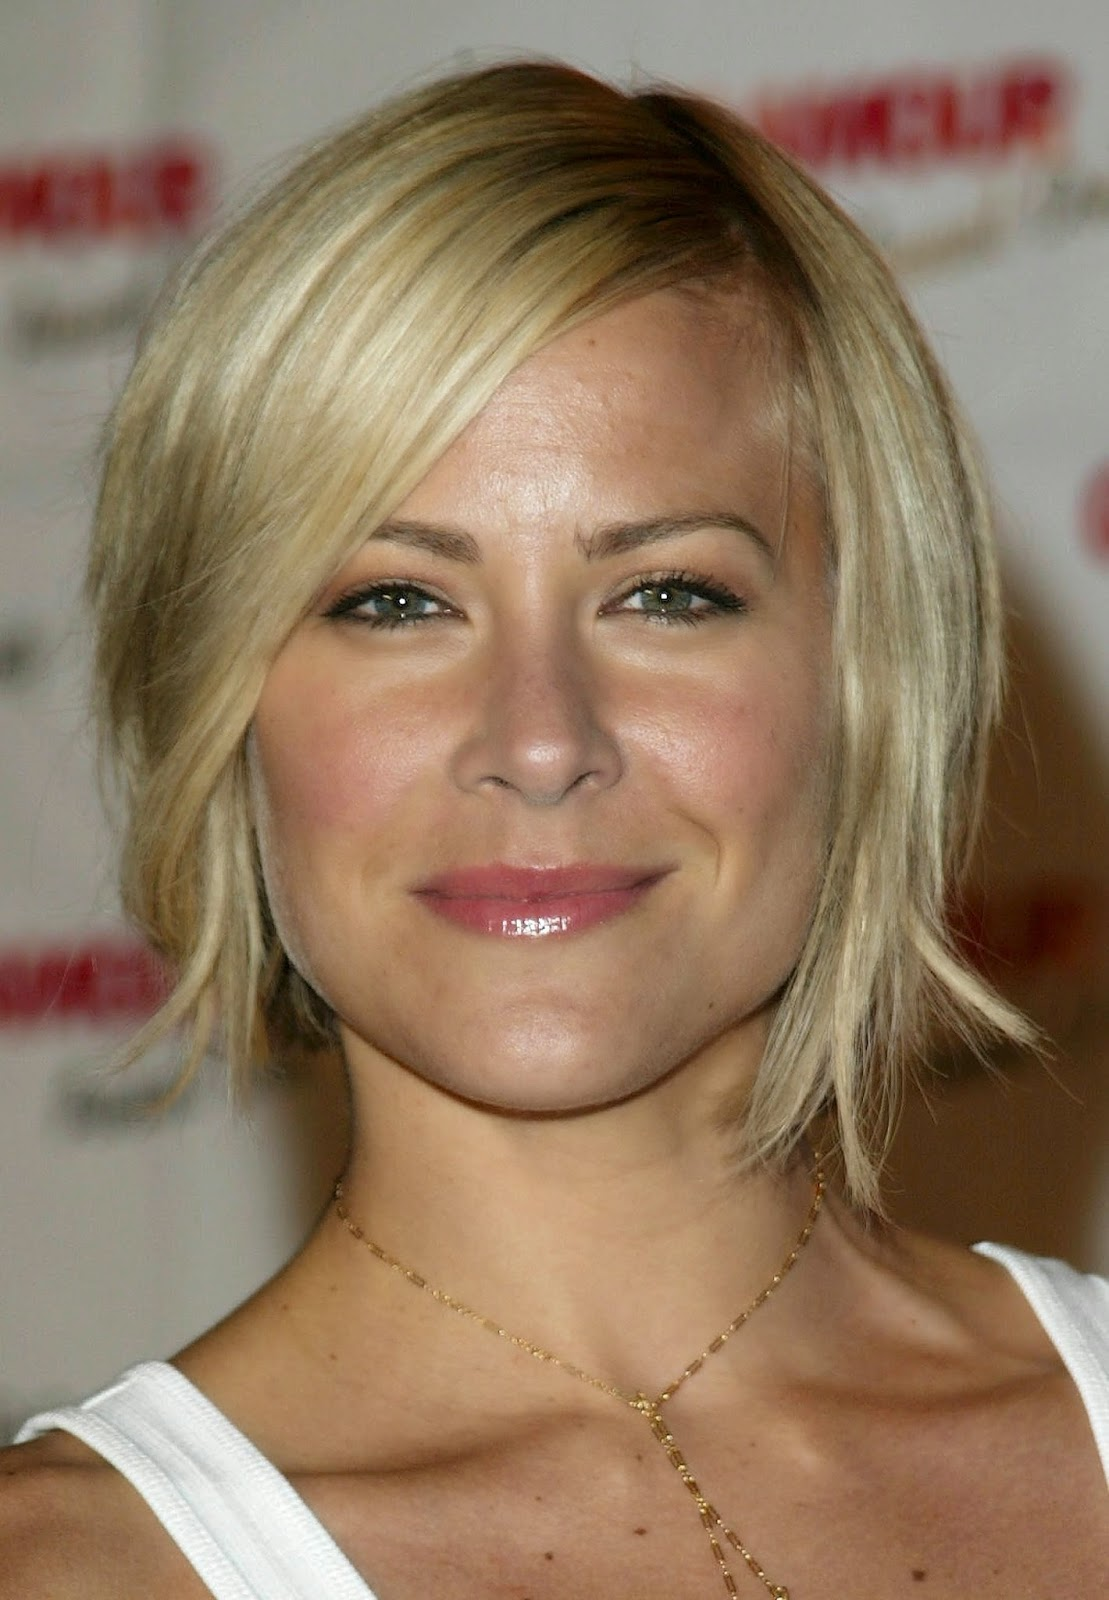 Awesome Short Layered Angled Bob Hairstyles Short Layered Bob Hairstyles 2015